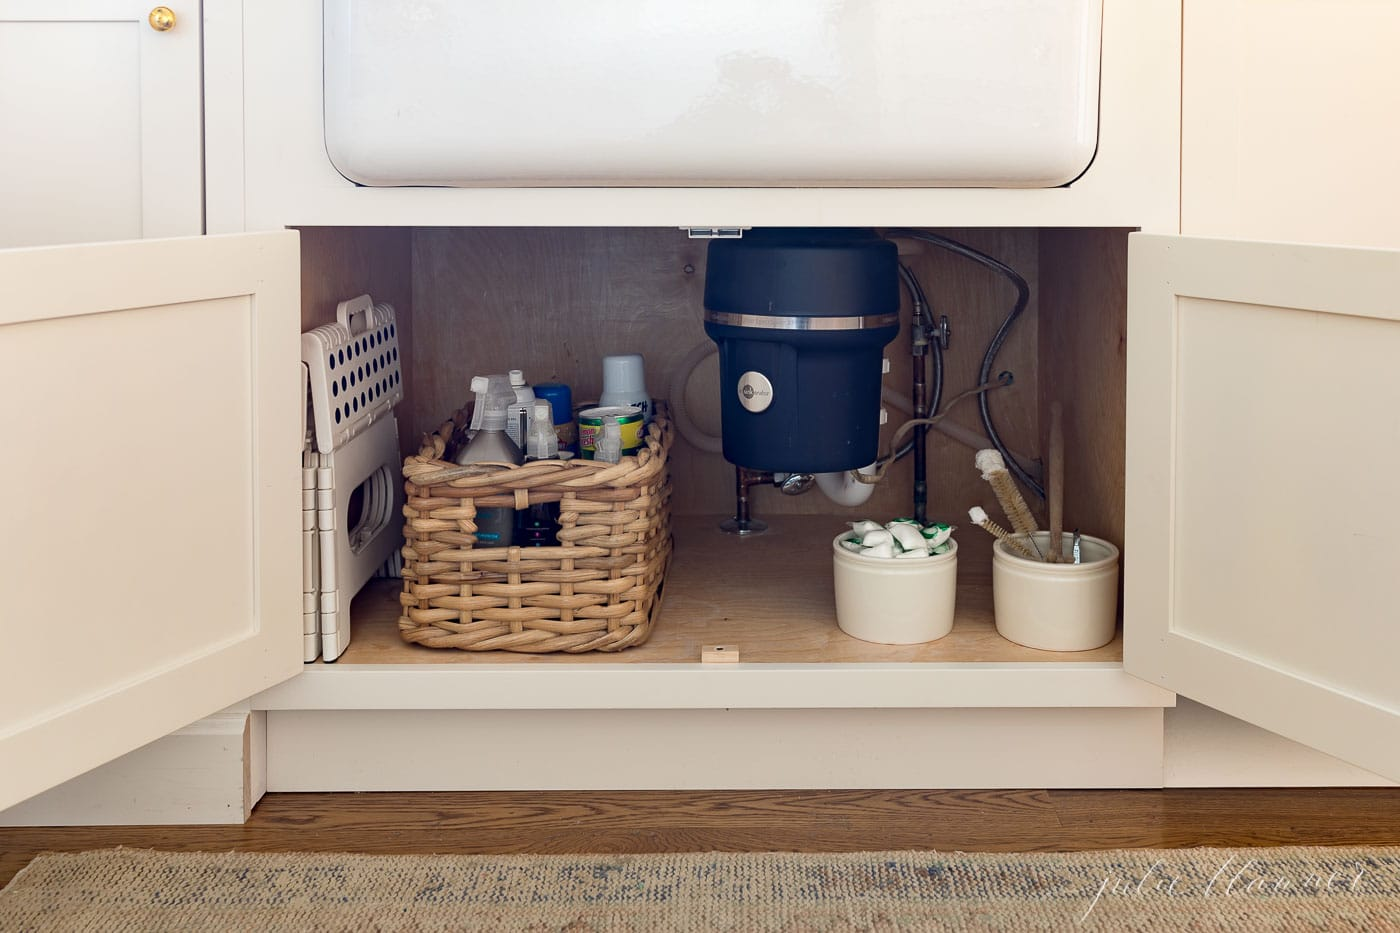 under sink cabinet organized with baskets and tubs.